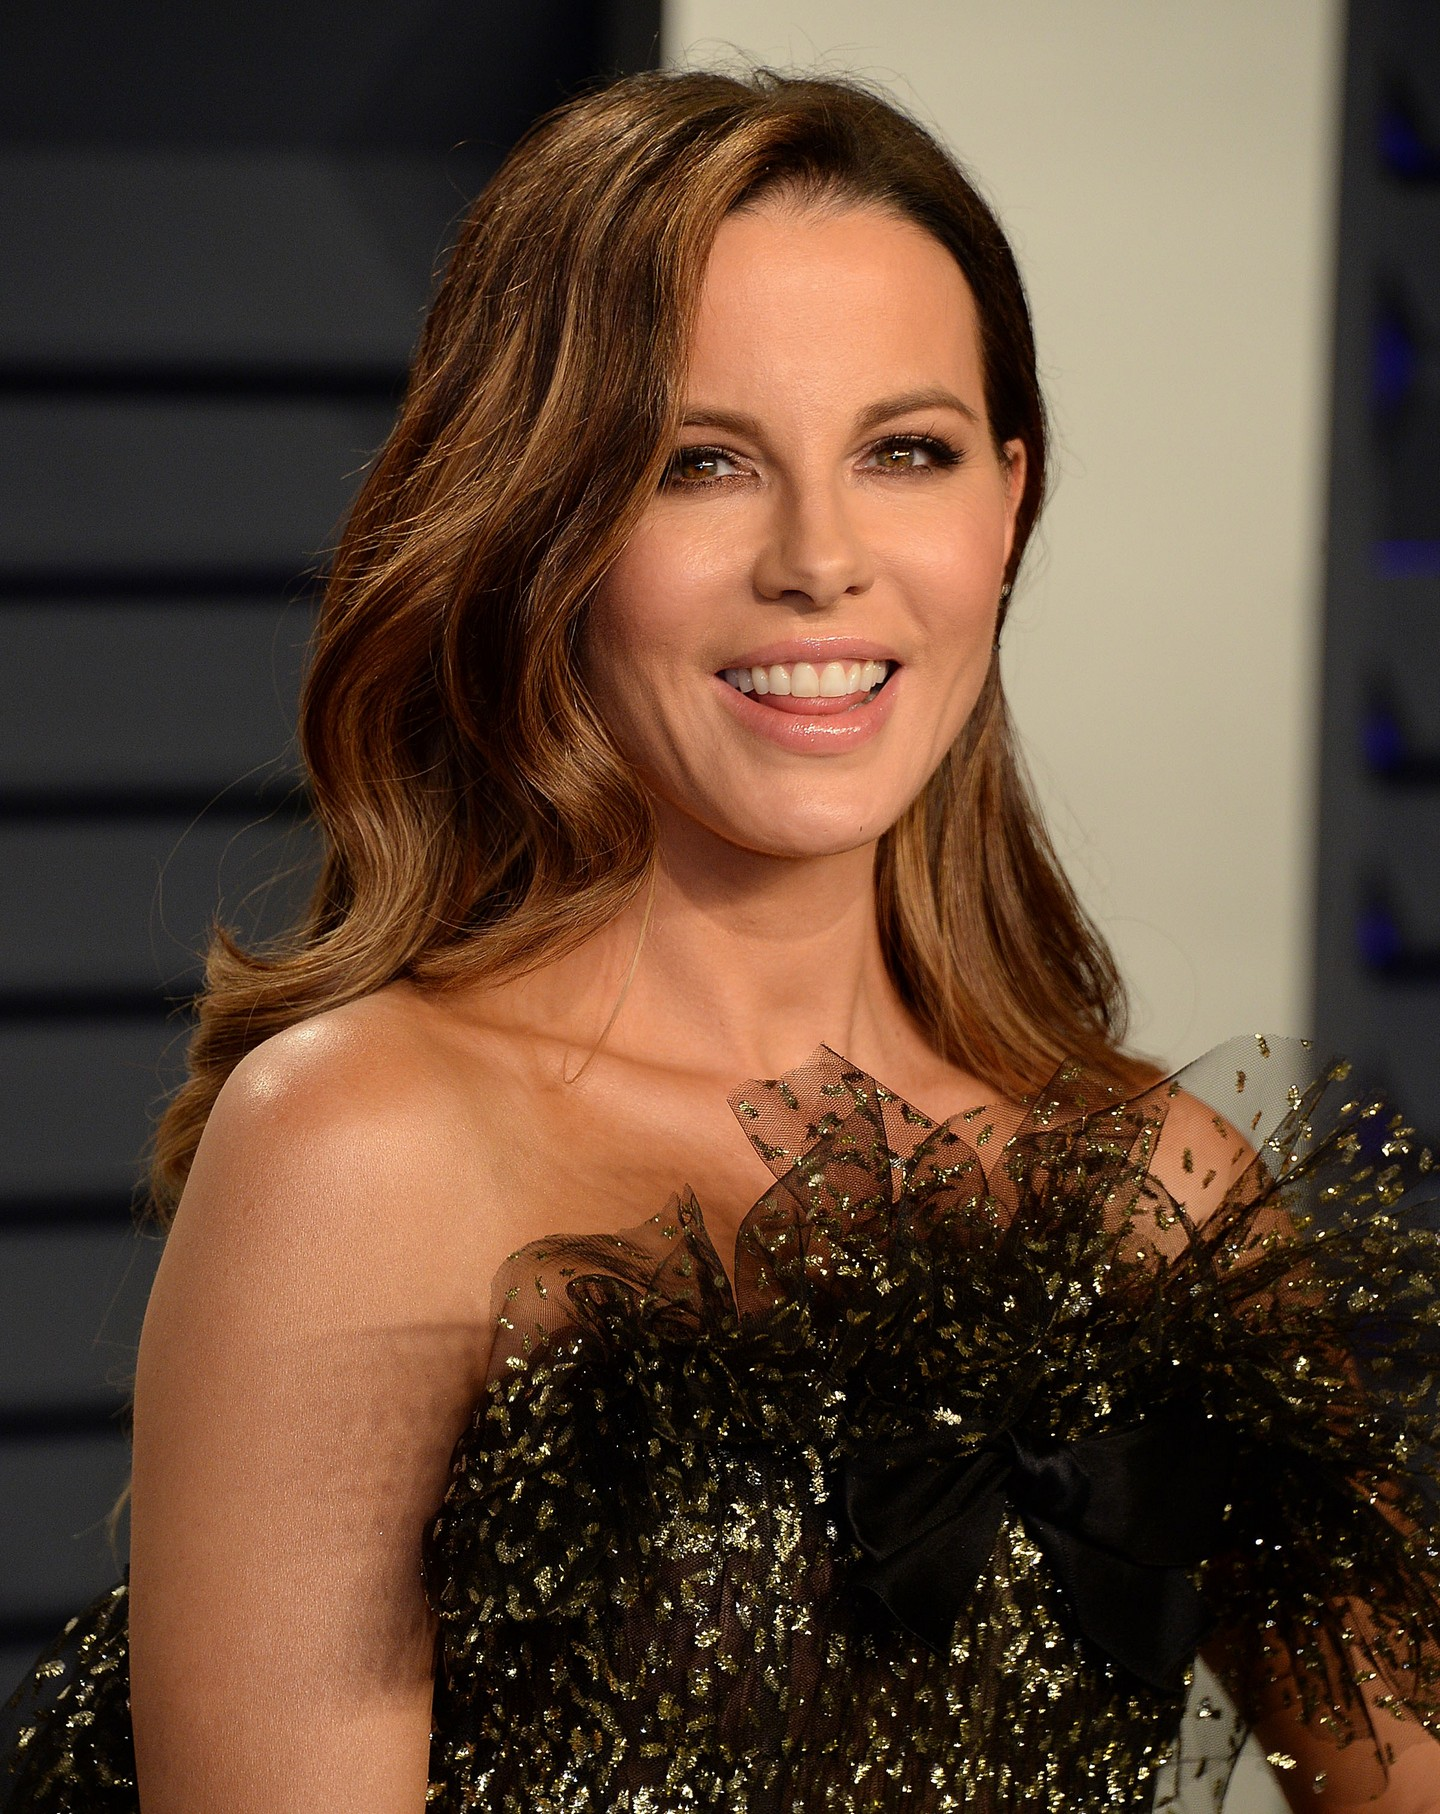 Kate Beckinsale Sexy Photots, Lovely Long Legs   The Fappening TV